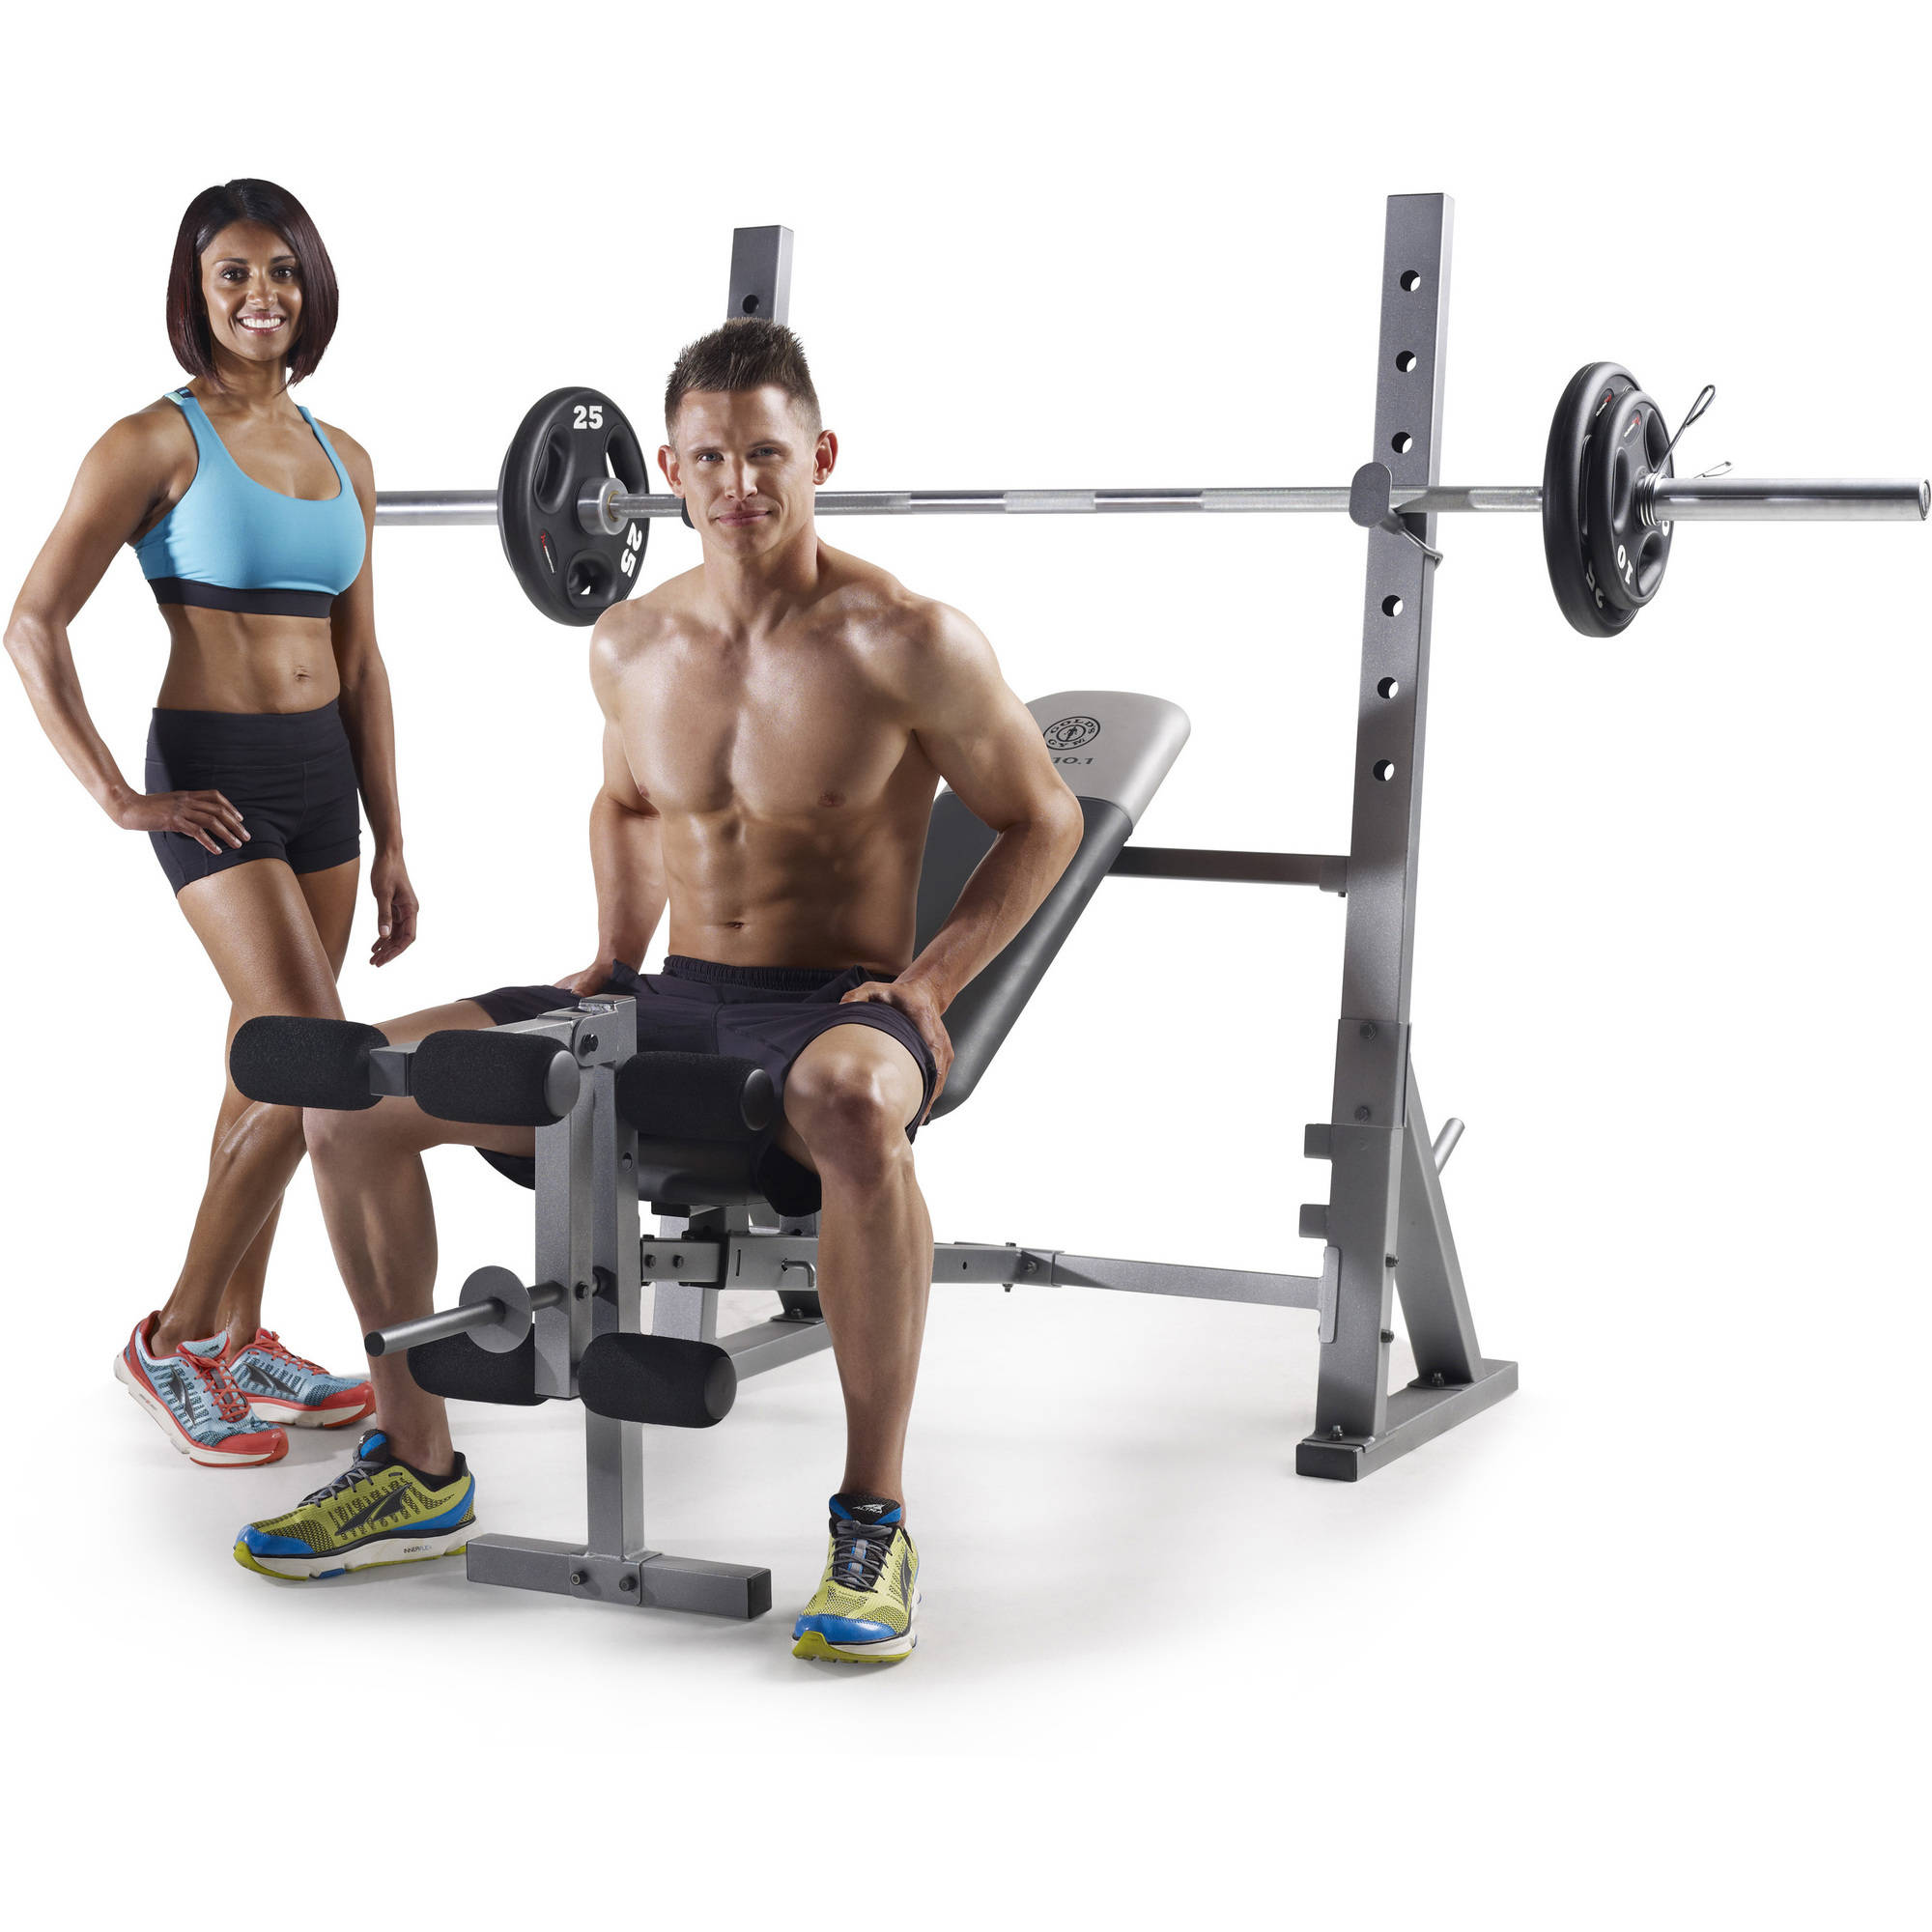 Gold 39 s gym xr 10 1 olympic weight bench by icon health and fitness inc Weight bench and weights